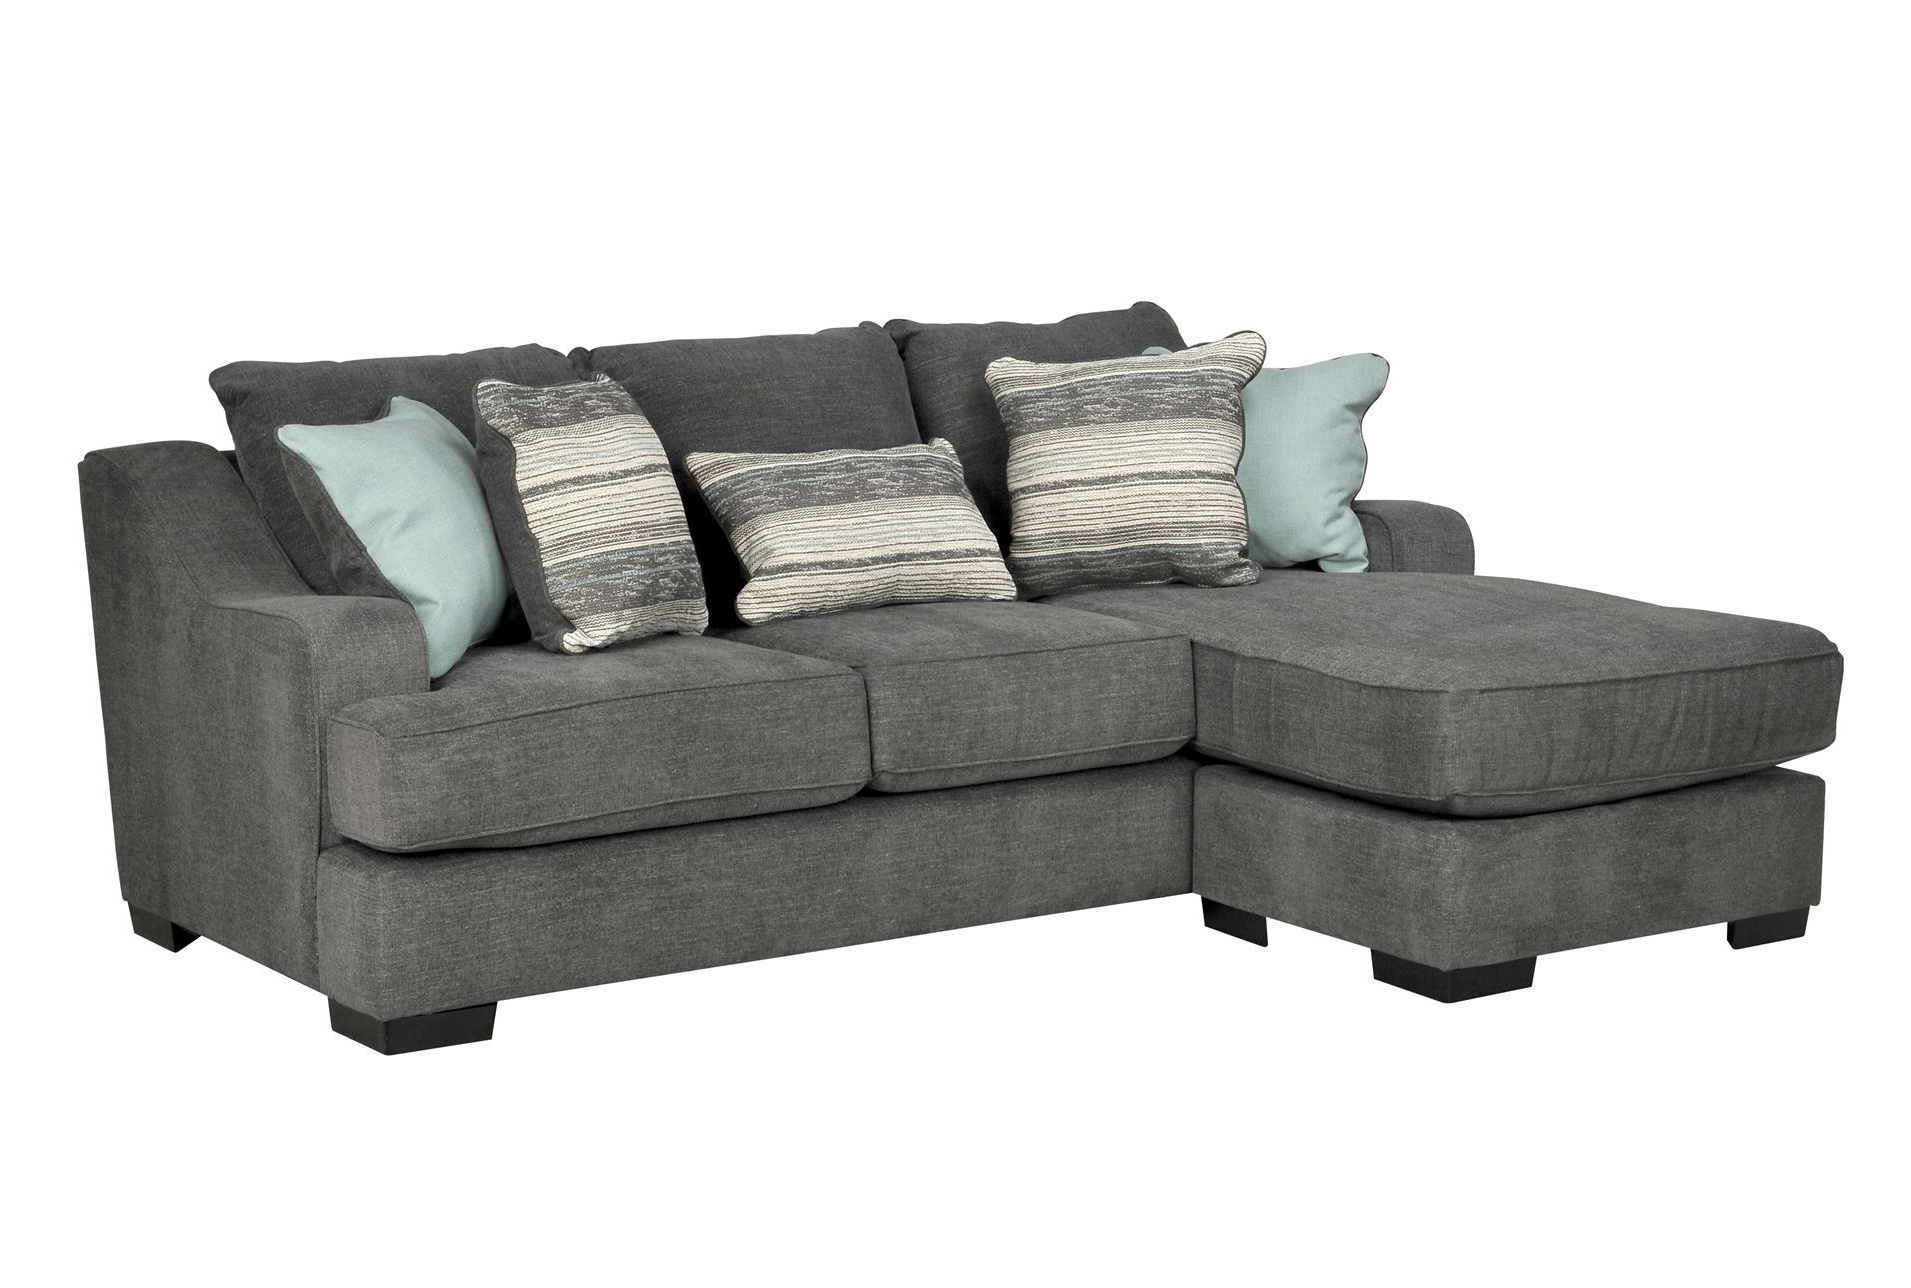 Recent Gray Chaise Sofas Pertaining To Couch Stunning Grey Couch With Chaise Hd Wallpaper Photographs (View 15 of 15)